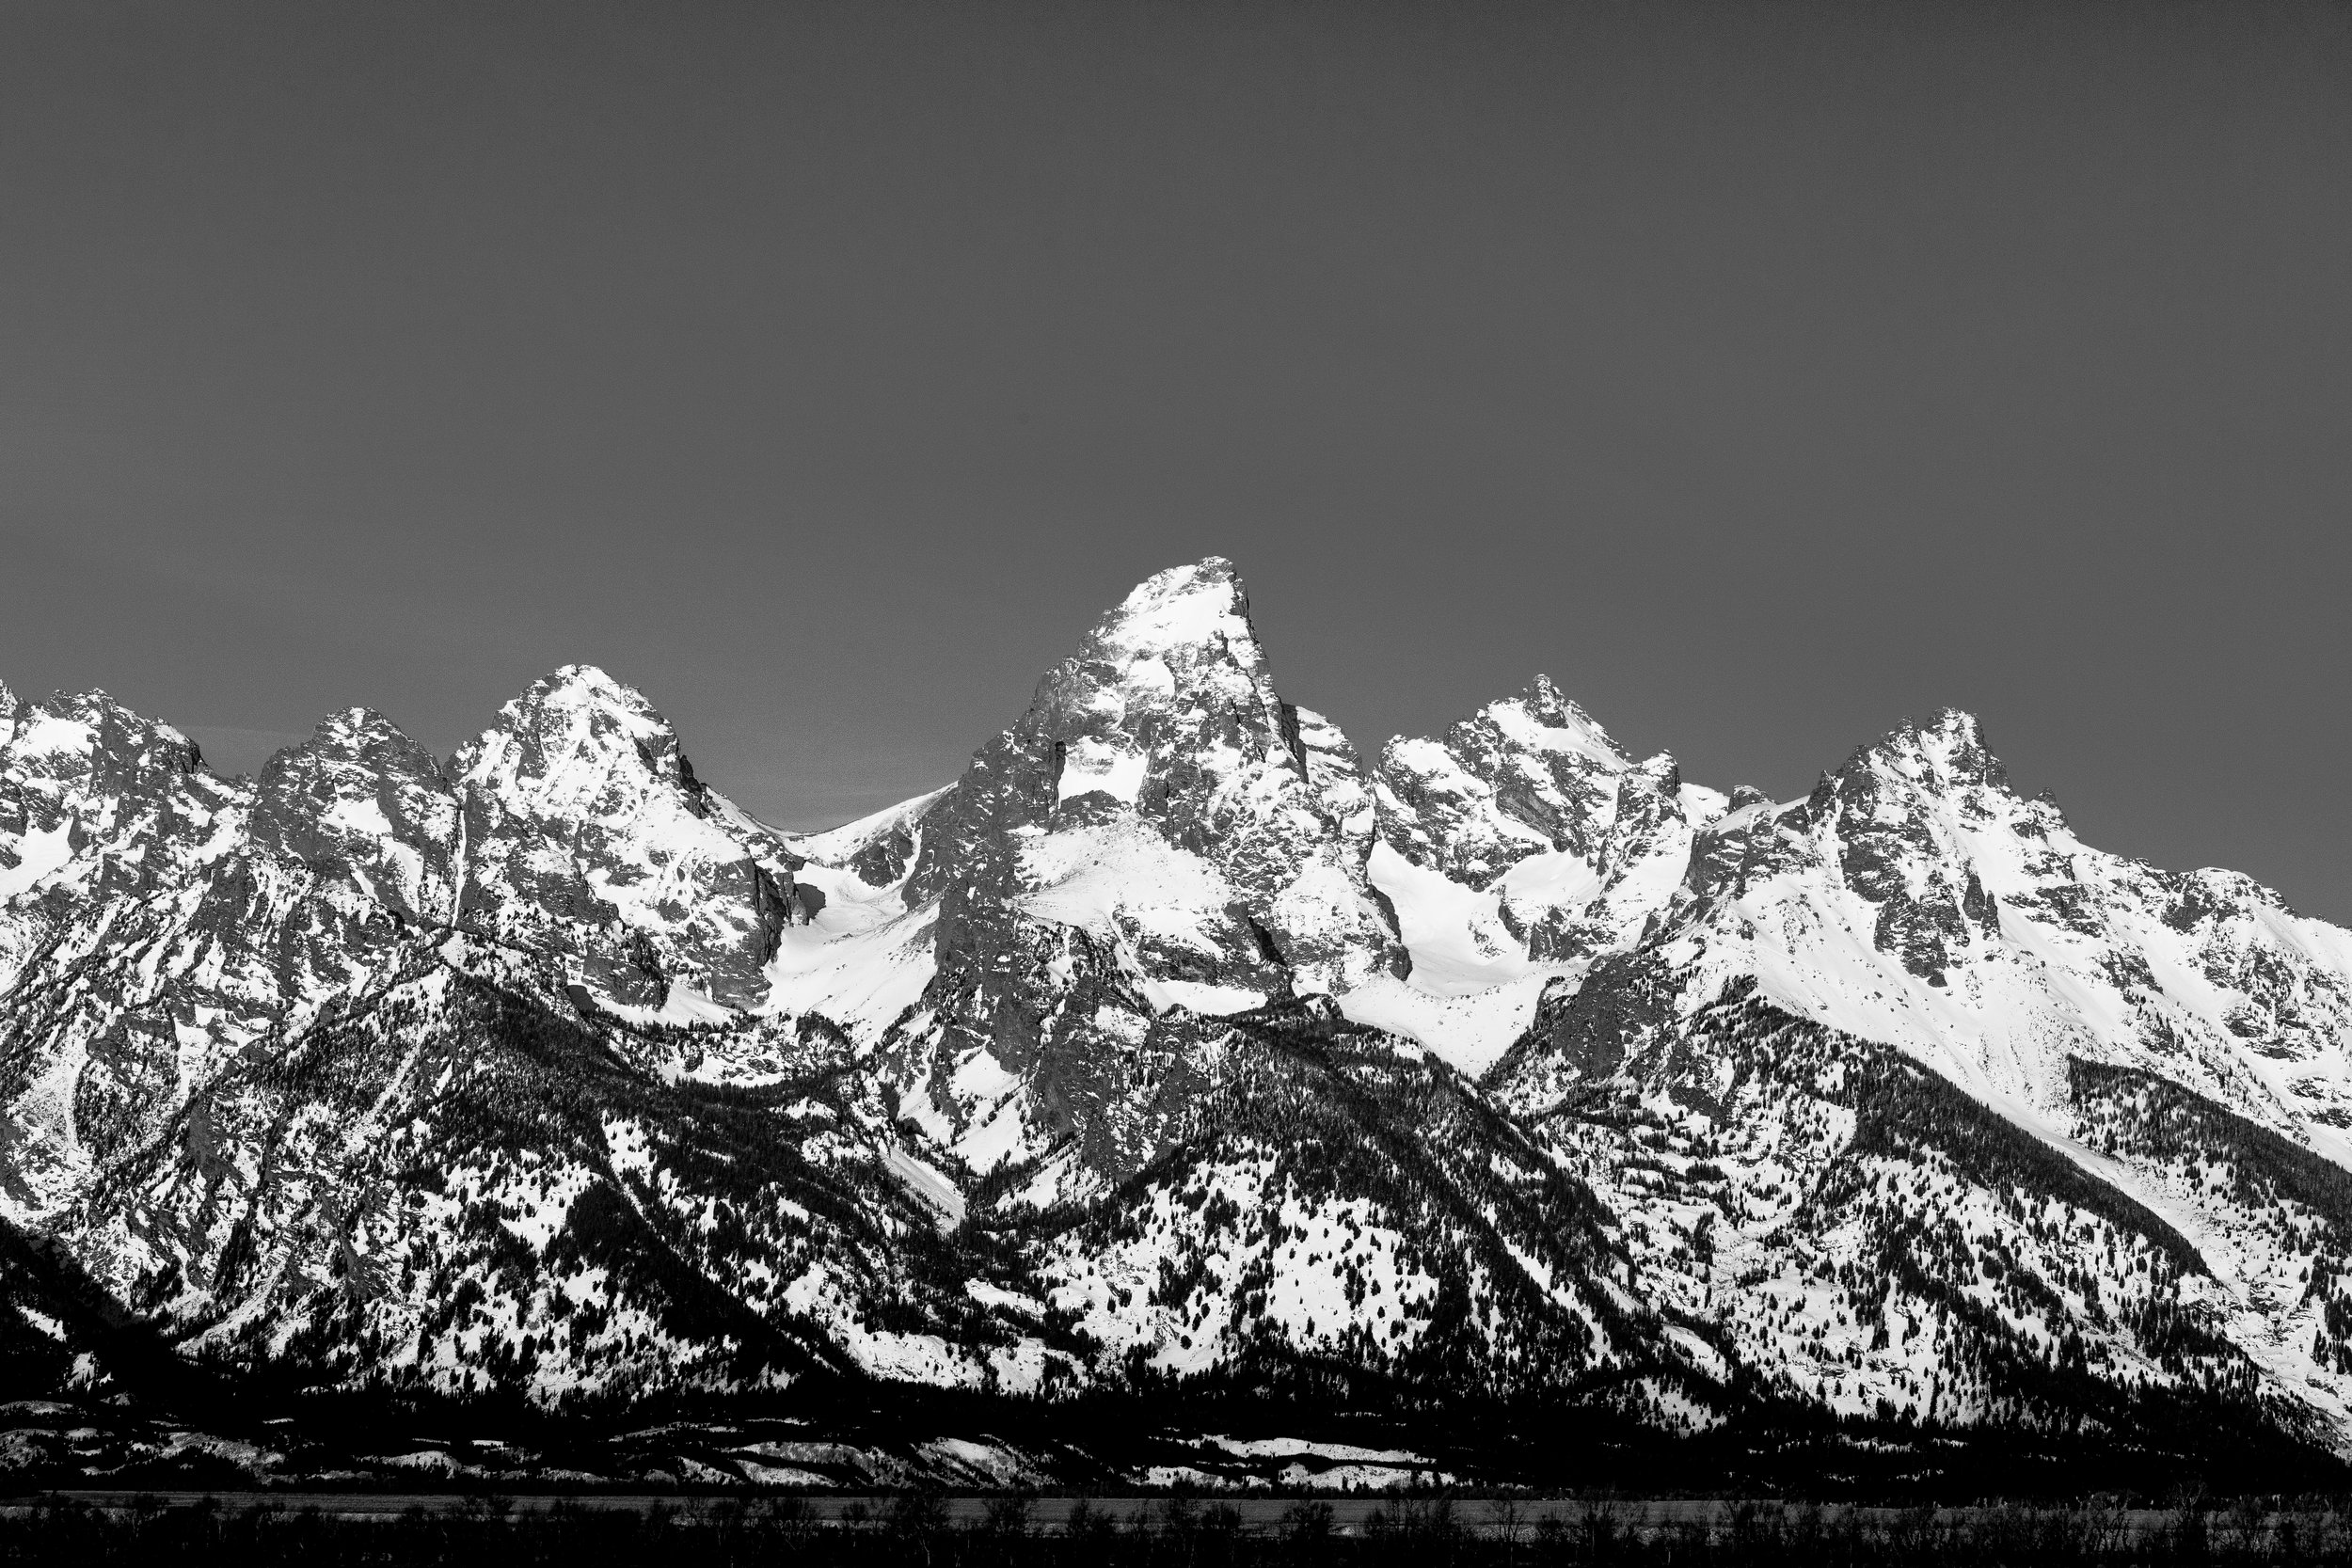 nicole-daacke-photography-jackson-hole-grand-teton-national-park-elopement-wedding-photographer-adventurous-engagement-session-grand-tetons-snow-visit-itinerary-for-jackson-hole-wyoming-9742.jpg